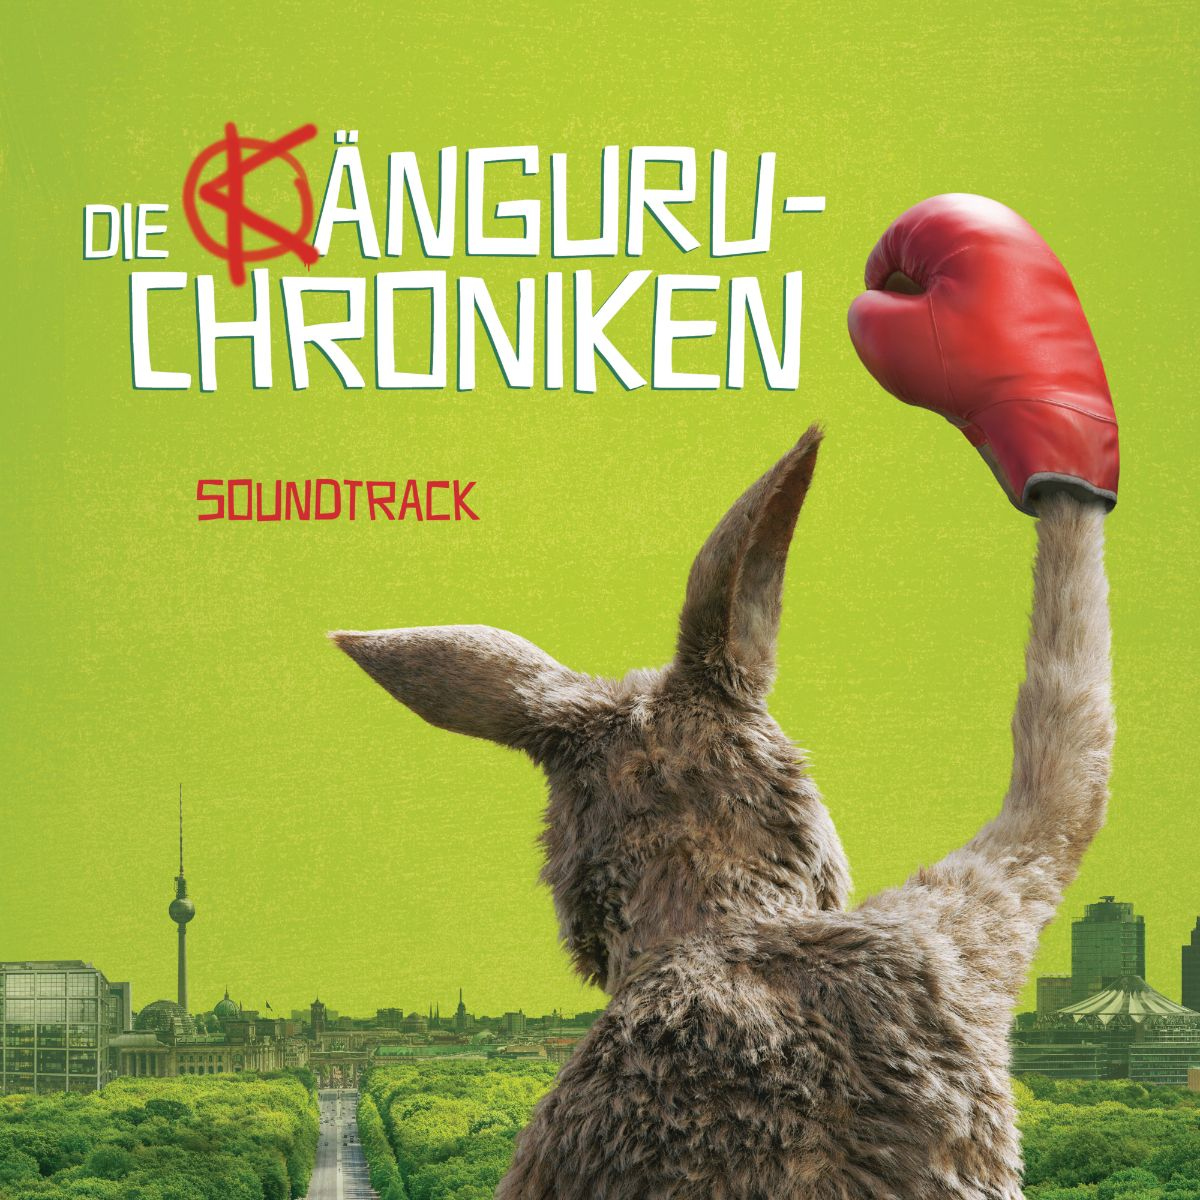 Känguru-Chroniken-Soundtrack!